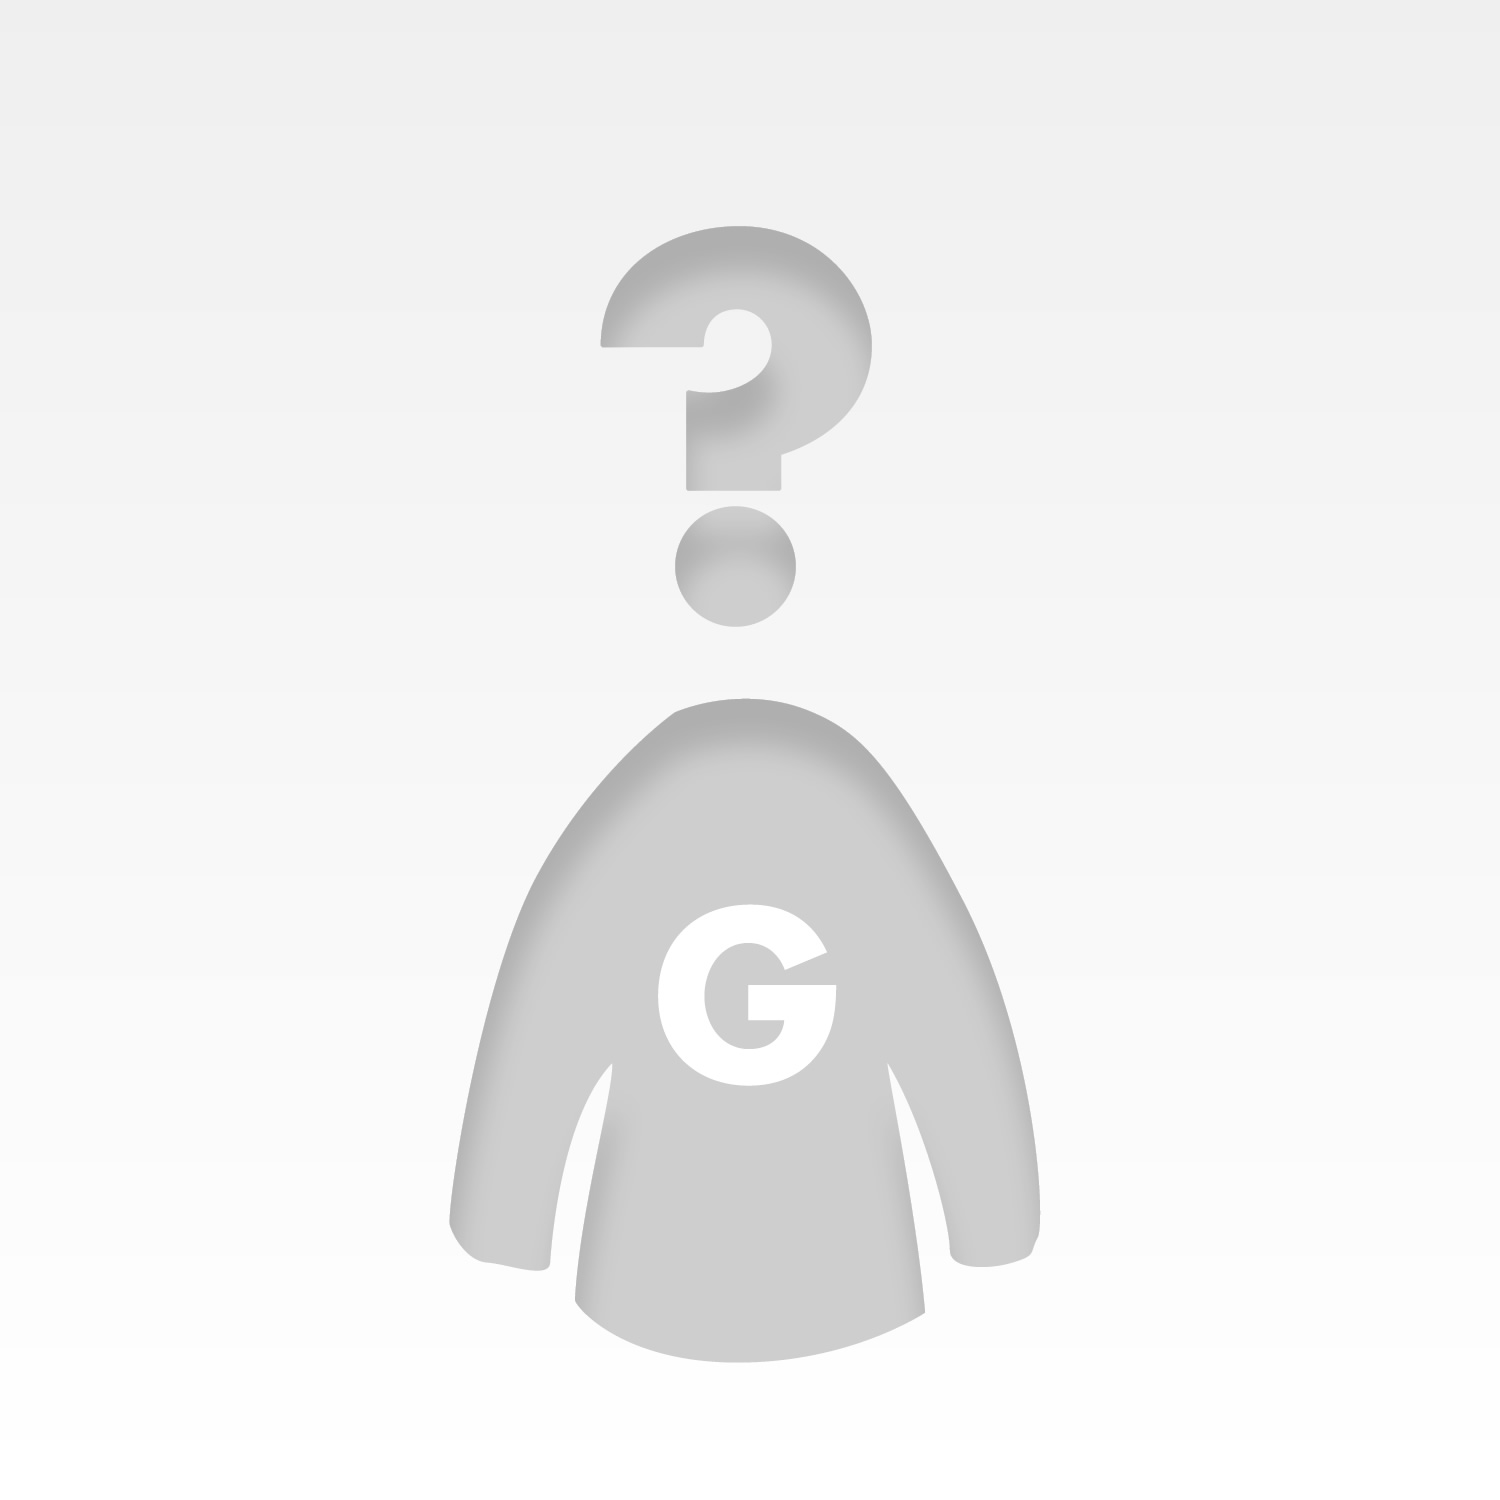 The myfirstglogster's avatar